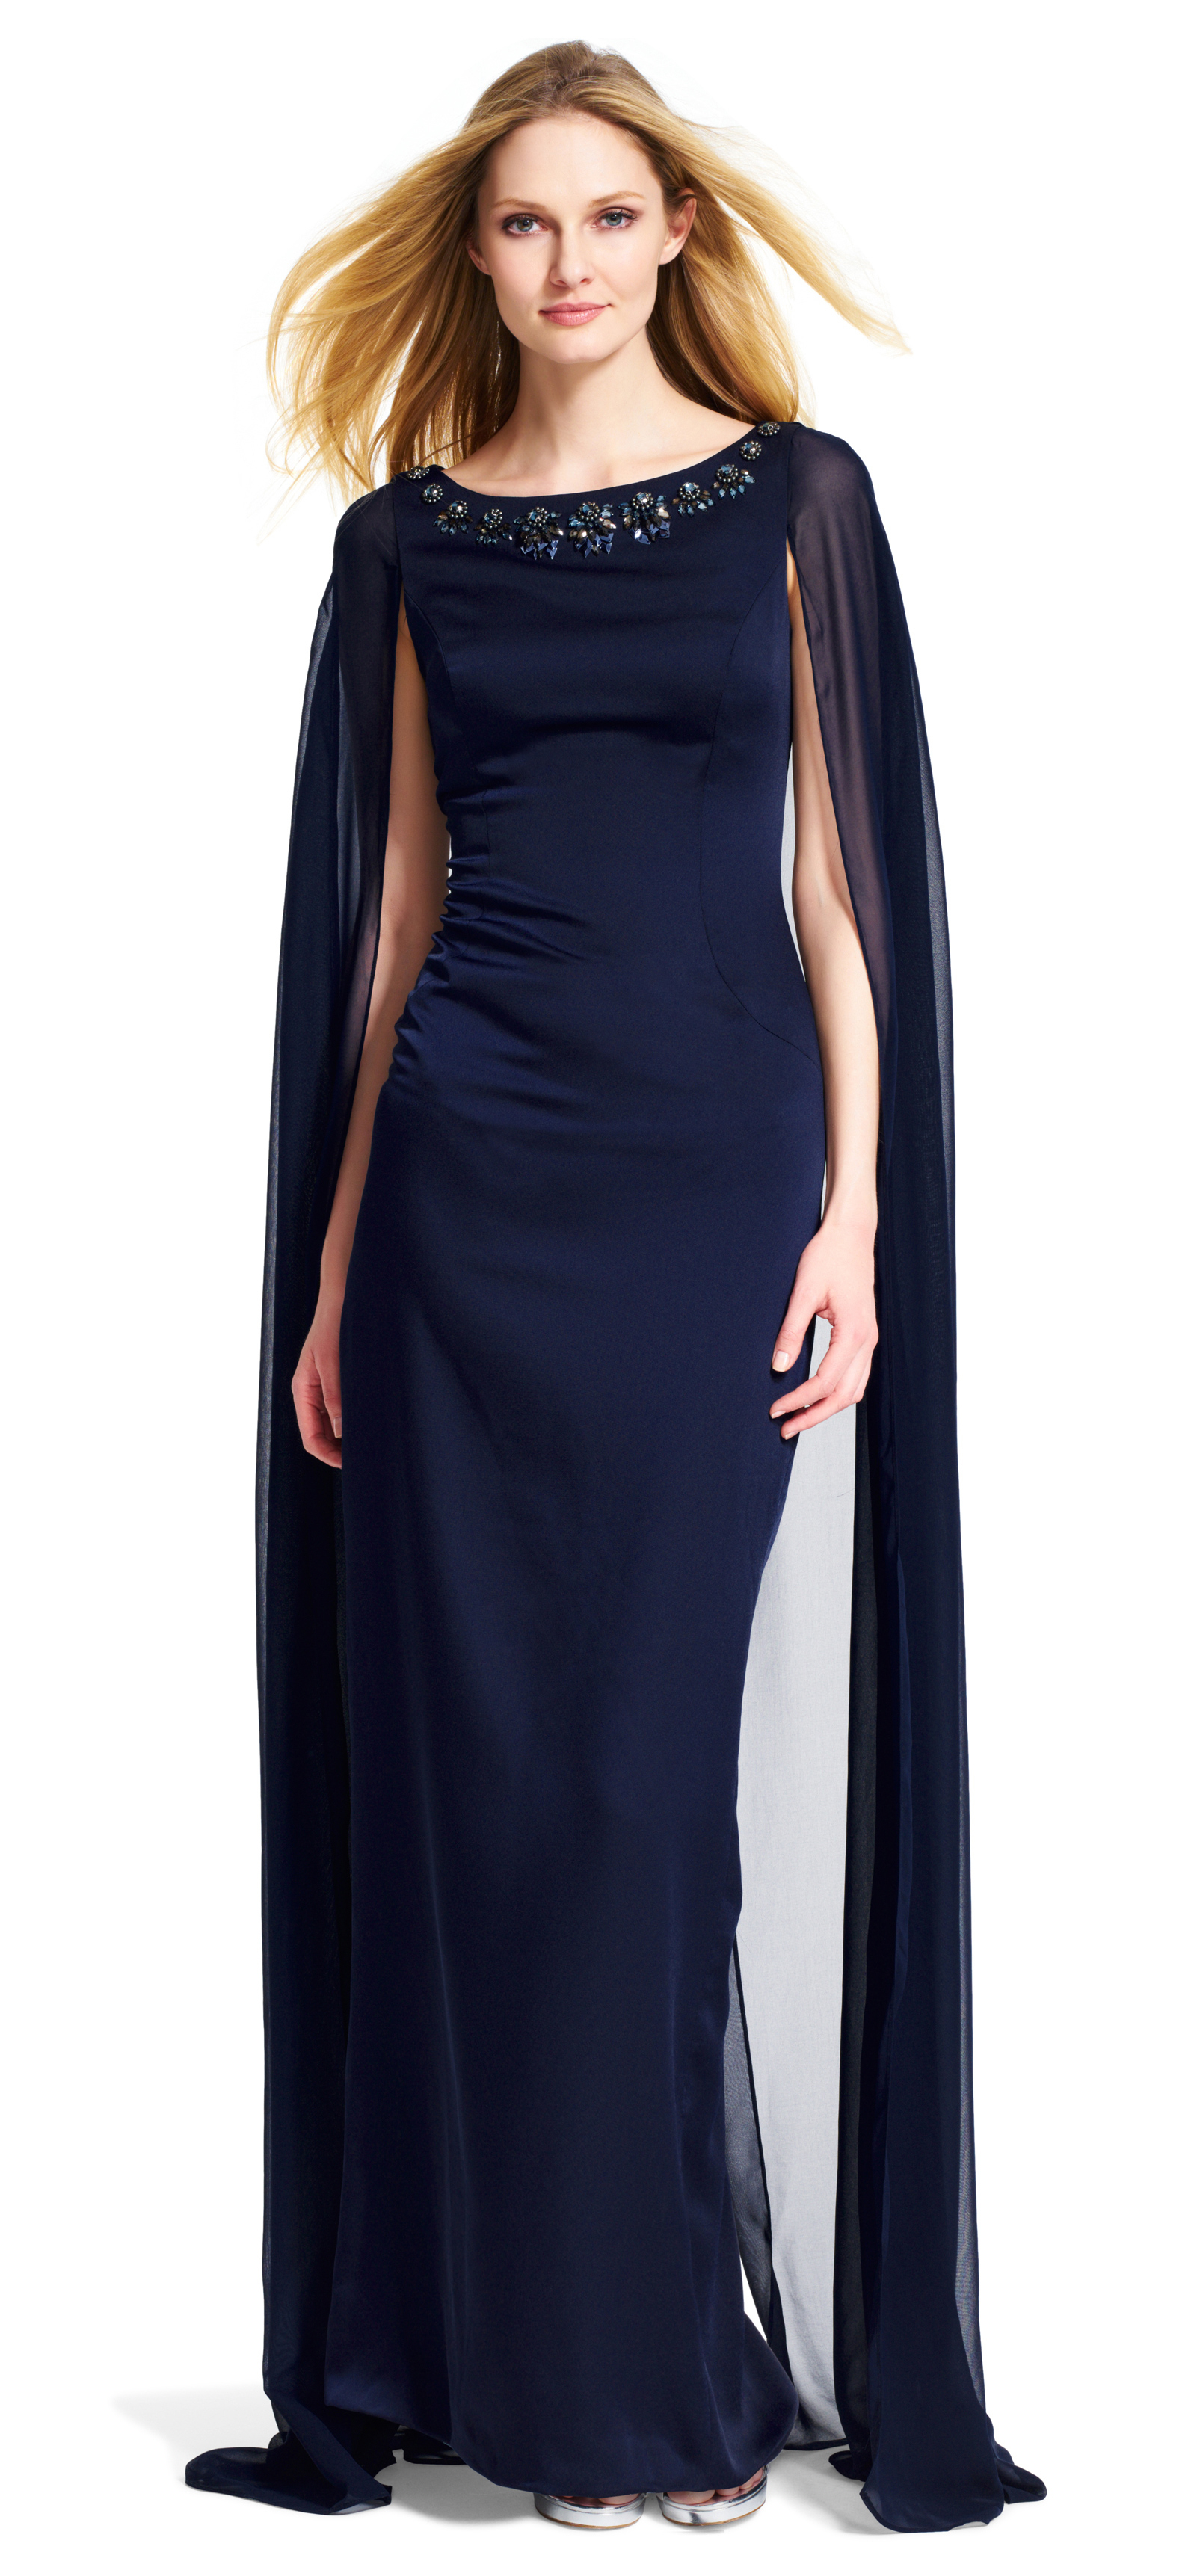 Adrianna Papell Crepe And Chiffon Cape Dress In Blue Lyst